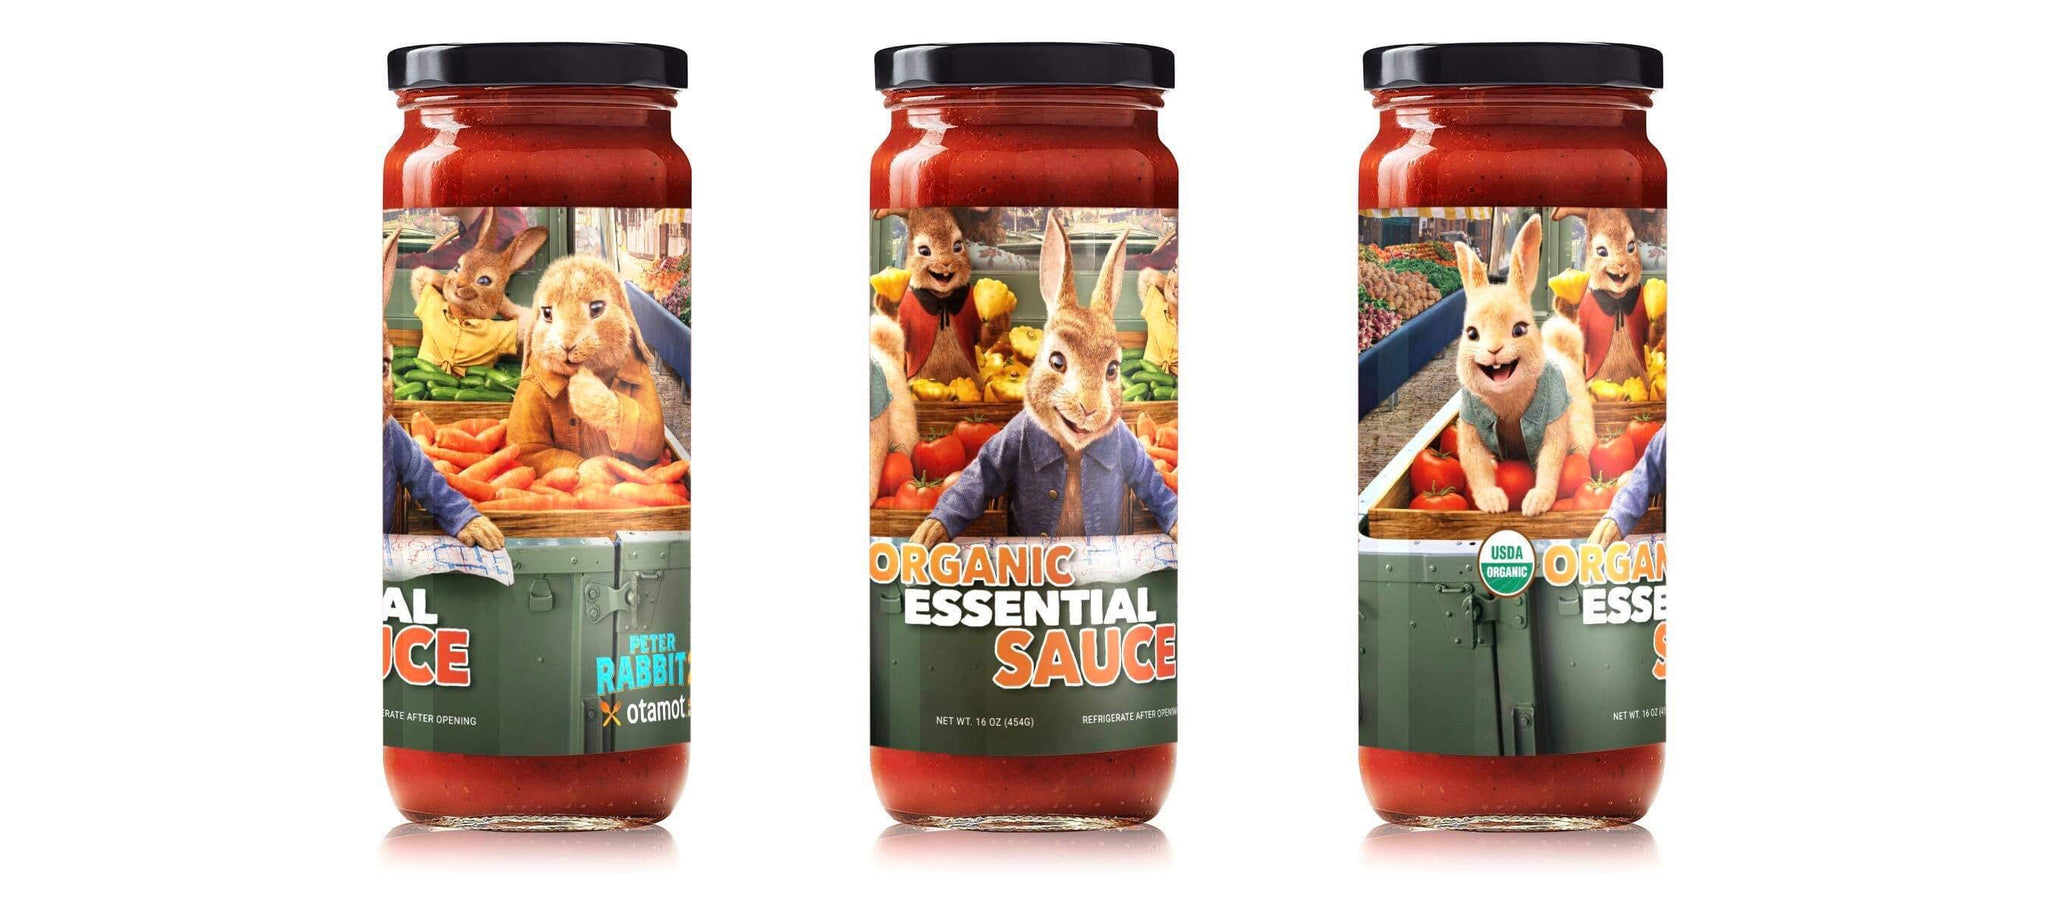 Limited Edition Peter Rabbit 2 Organic Essential Sauce - Single Jar